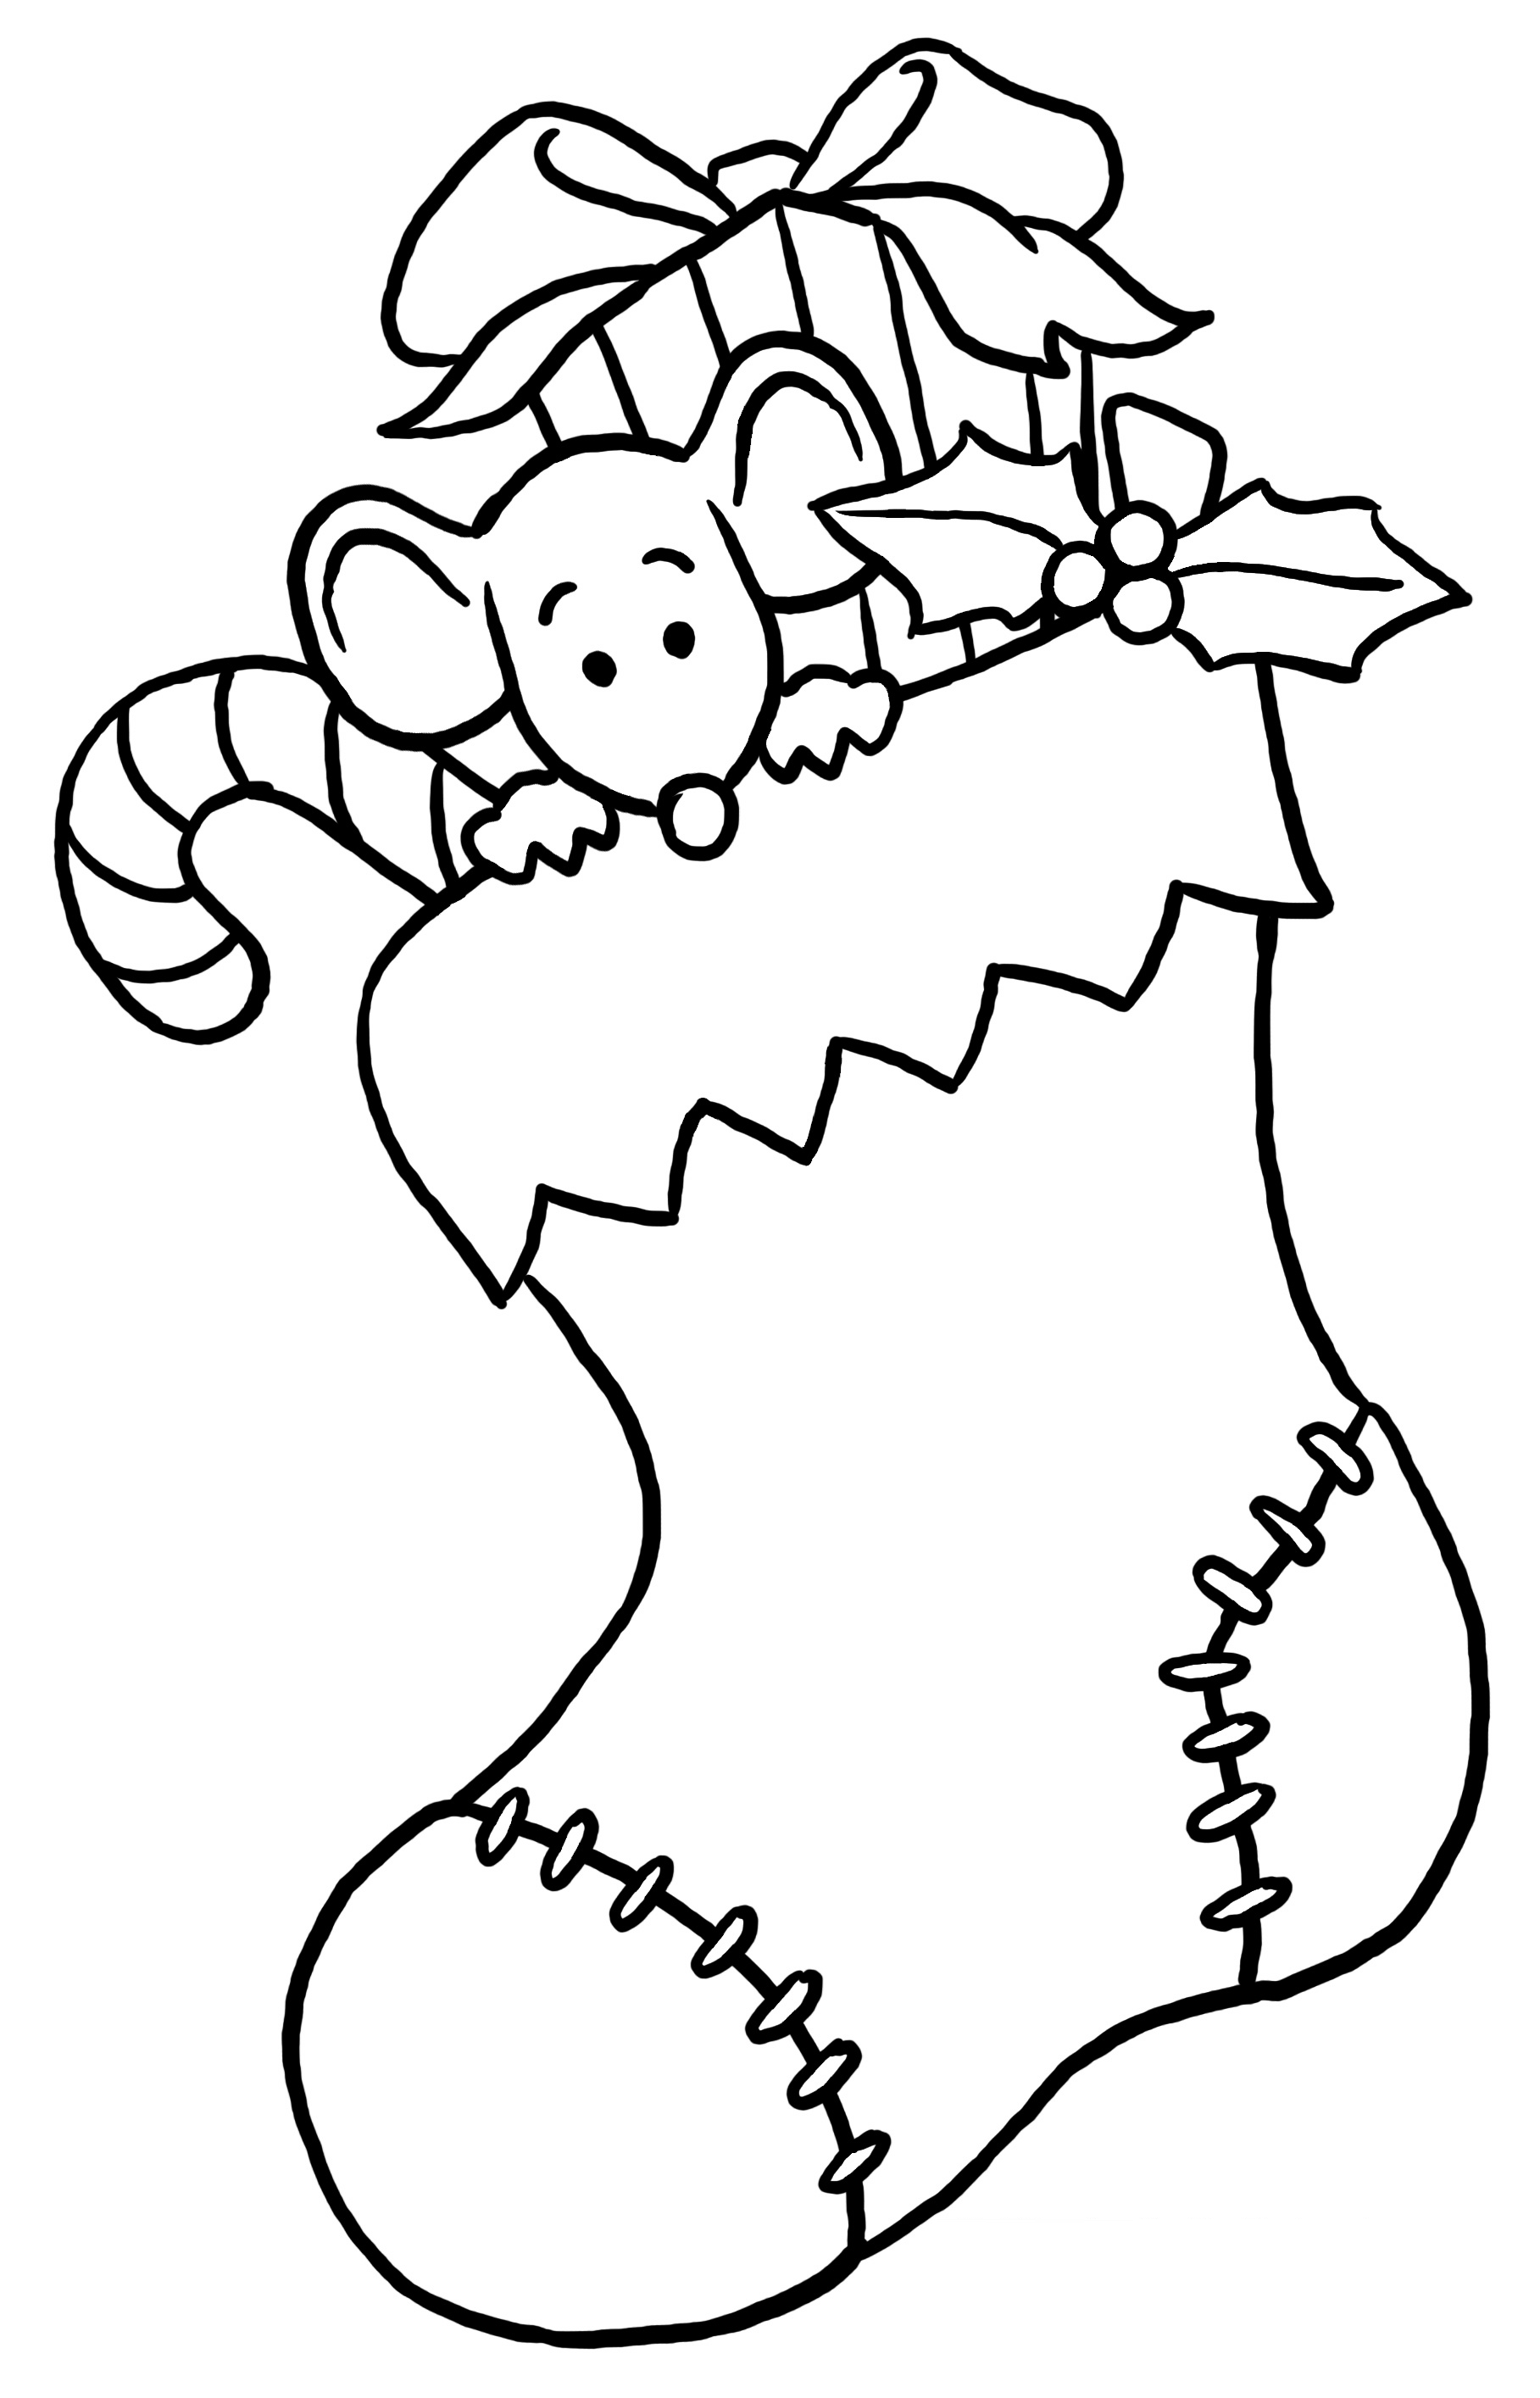 Adult Beauty Free Printable Christmas Coloring Pages For Kids Images cute mickey mouse christmas coloring pages to download and print for images